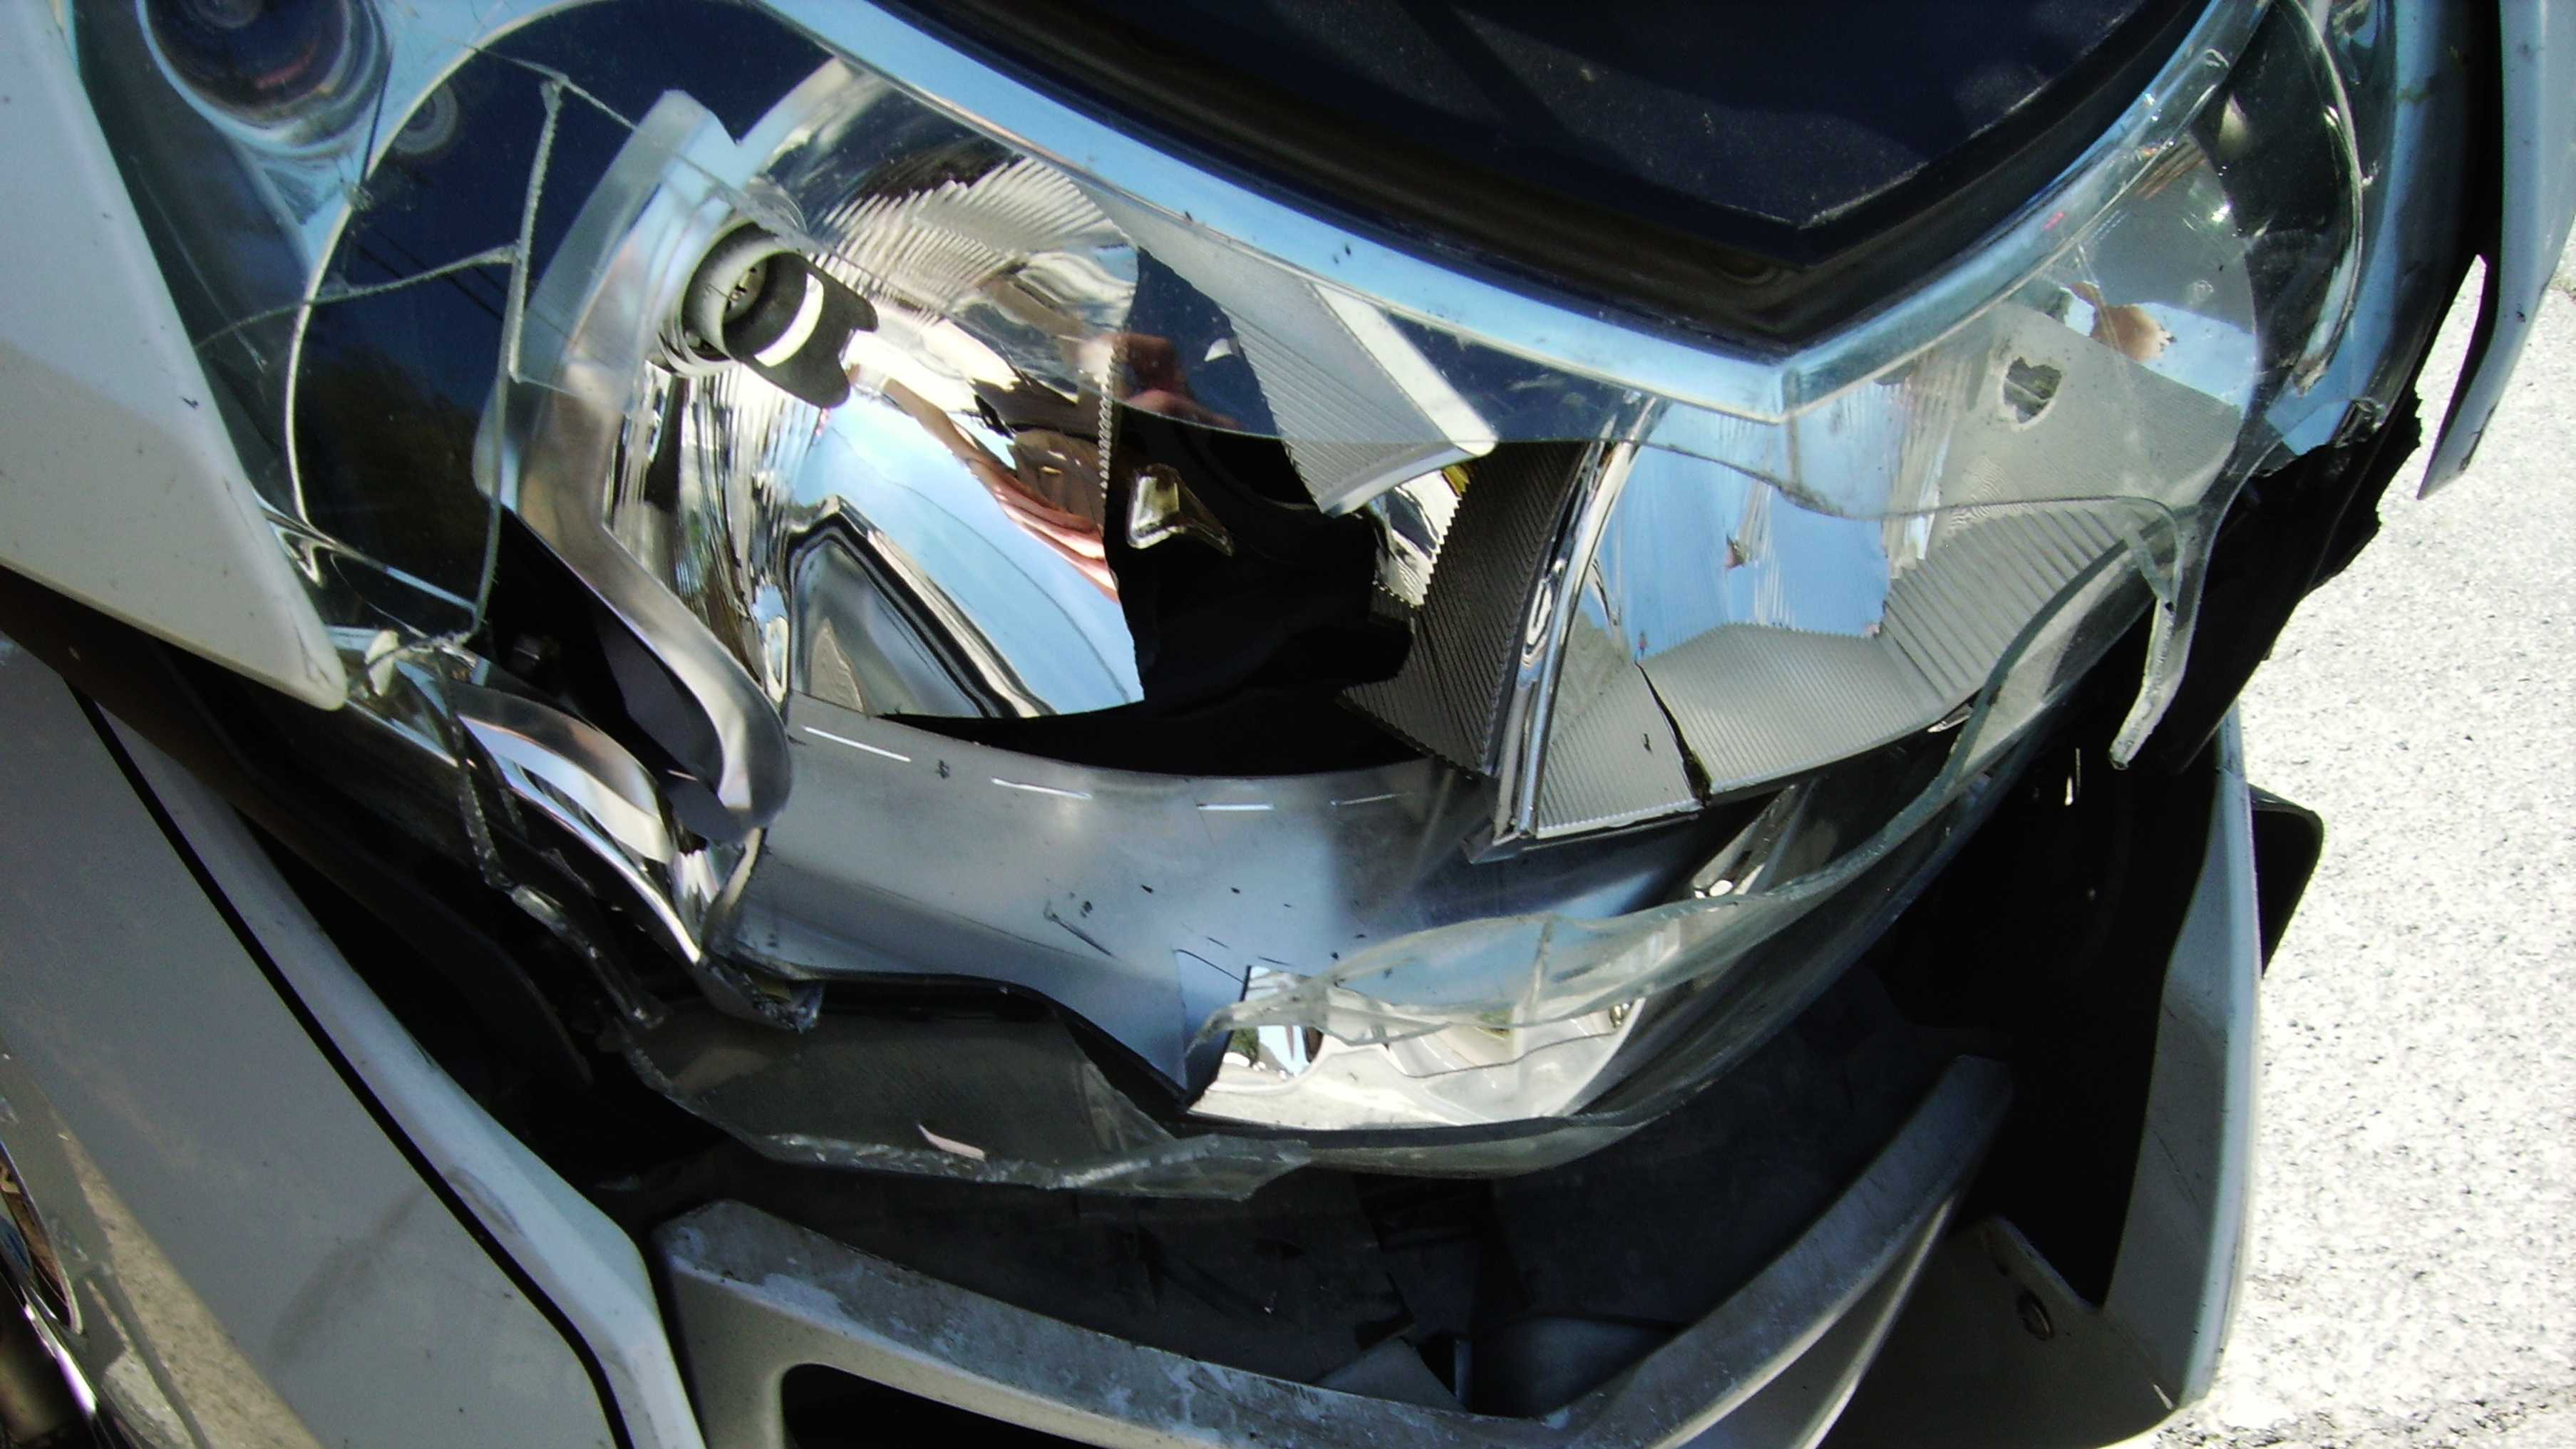 A CHP officer's motorcycle is damaged after she crashed.